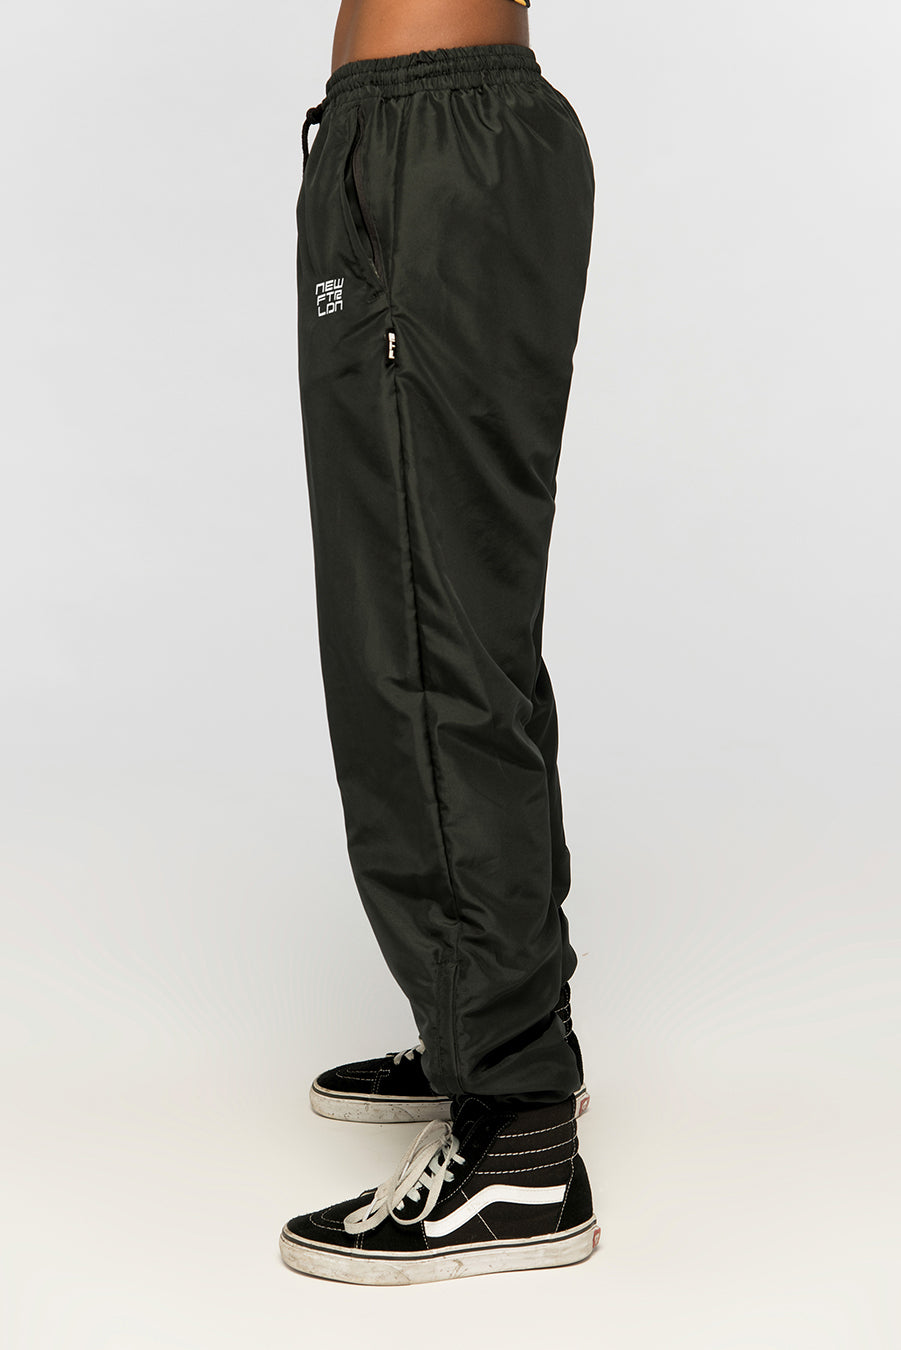 new_future_london_racer_logo_plain_joggers_white_logo_-1.jpg